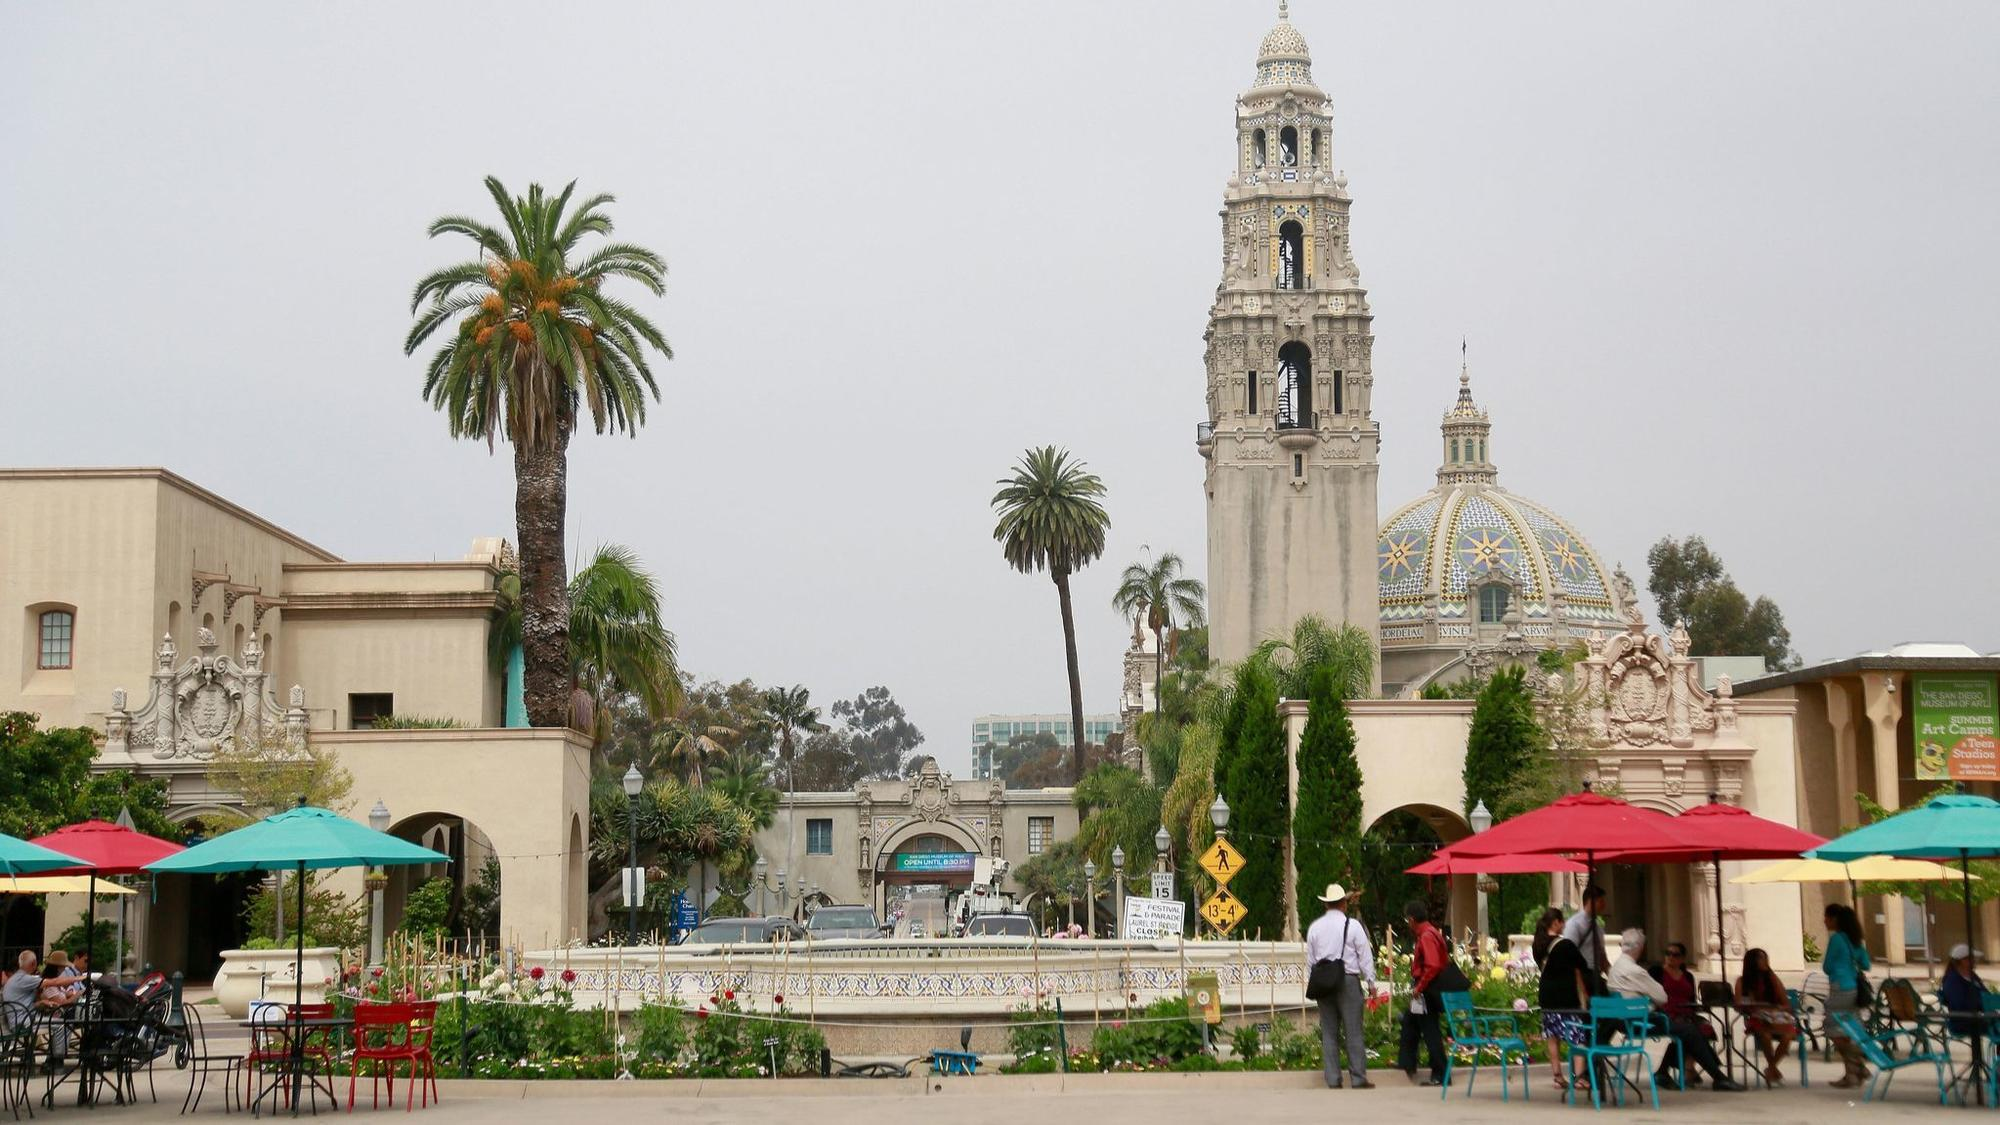 The Plaza de Panama project is said to remove traffic from the historic heart of Balboa Park and increase parking while creating 6.3 acres of parkland, gardens and pedestrian fri